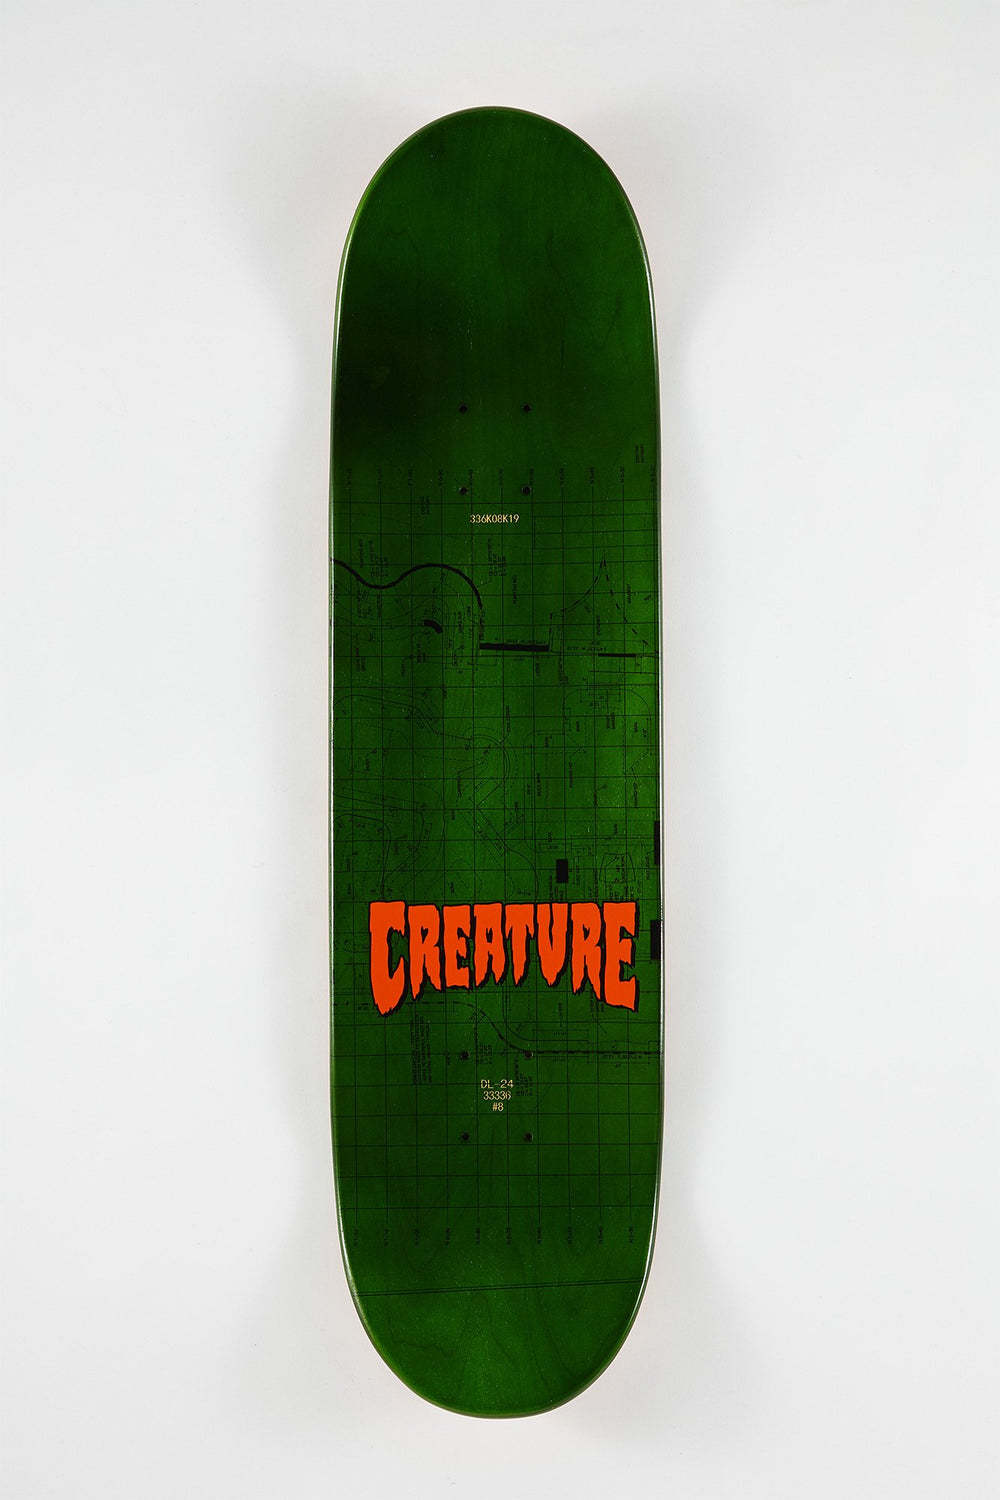 Creature Cody Lockwood Plans Skateboard Deck 8.5